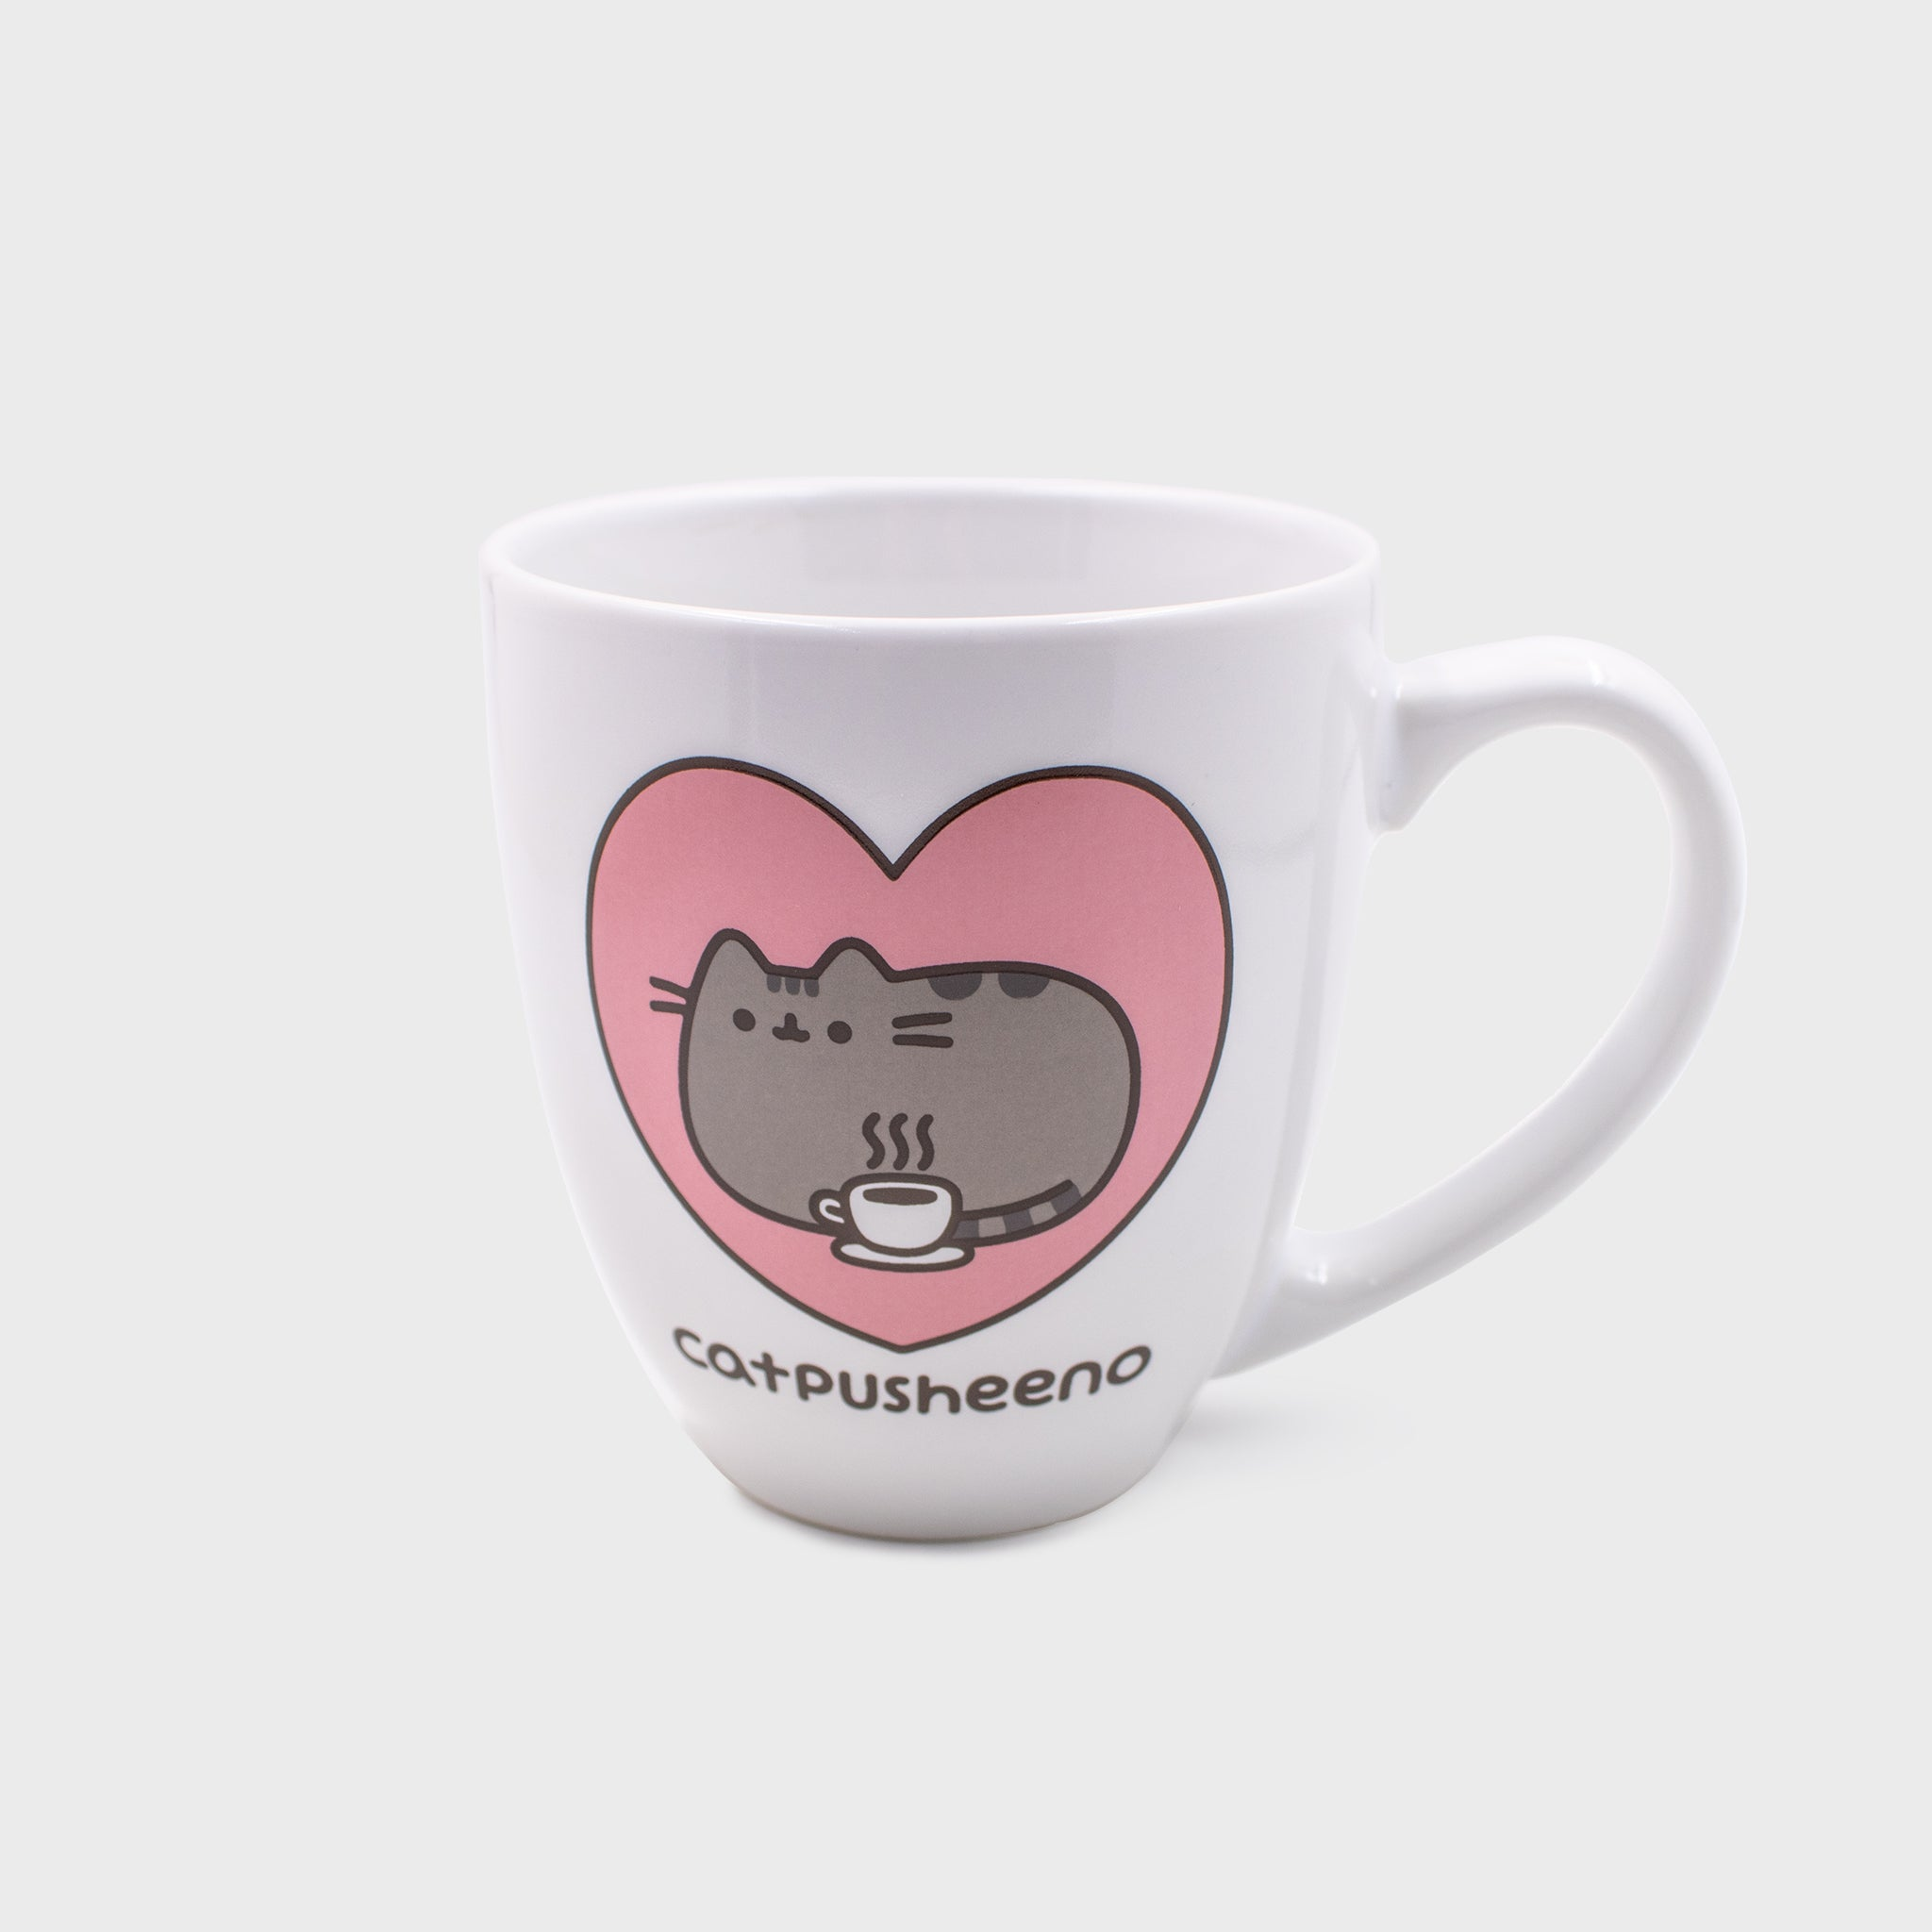 pusheen mug cup kitchenware cute cat culturefly